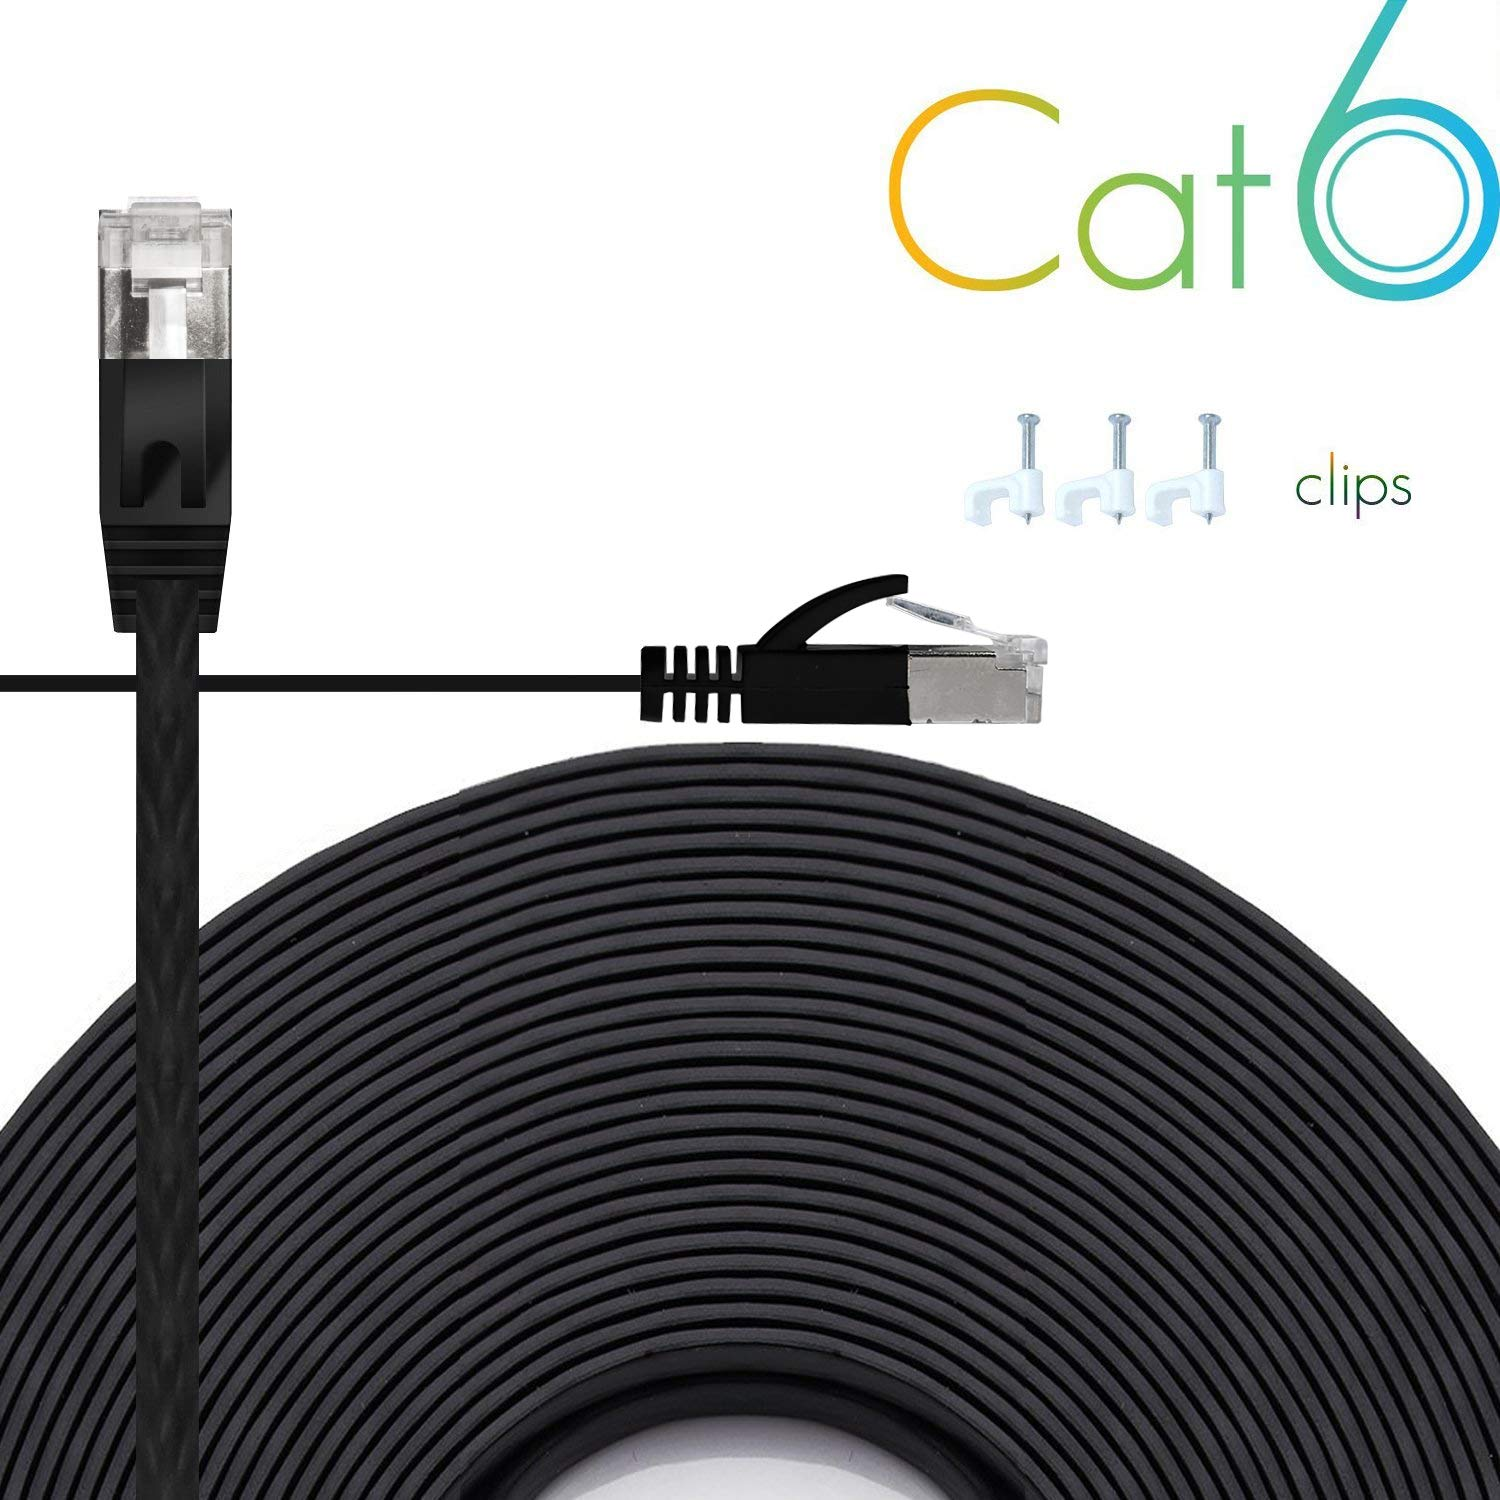 Ethernet Cable Cat6 Plus 50ft - Black Flat High Speed Internet Network Cable with Cable Clips - Computer Cable with Snagless Rj45 Connectors - 50 Feet Black by Aoforz